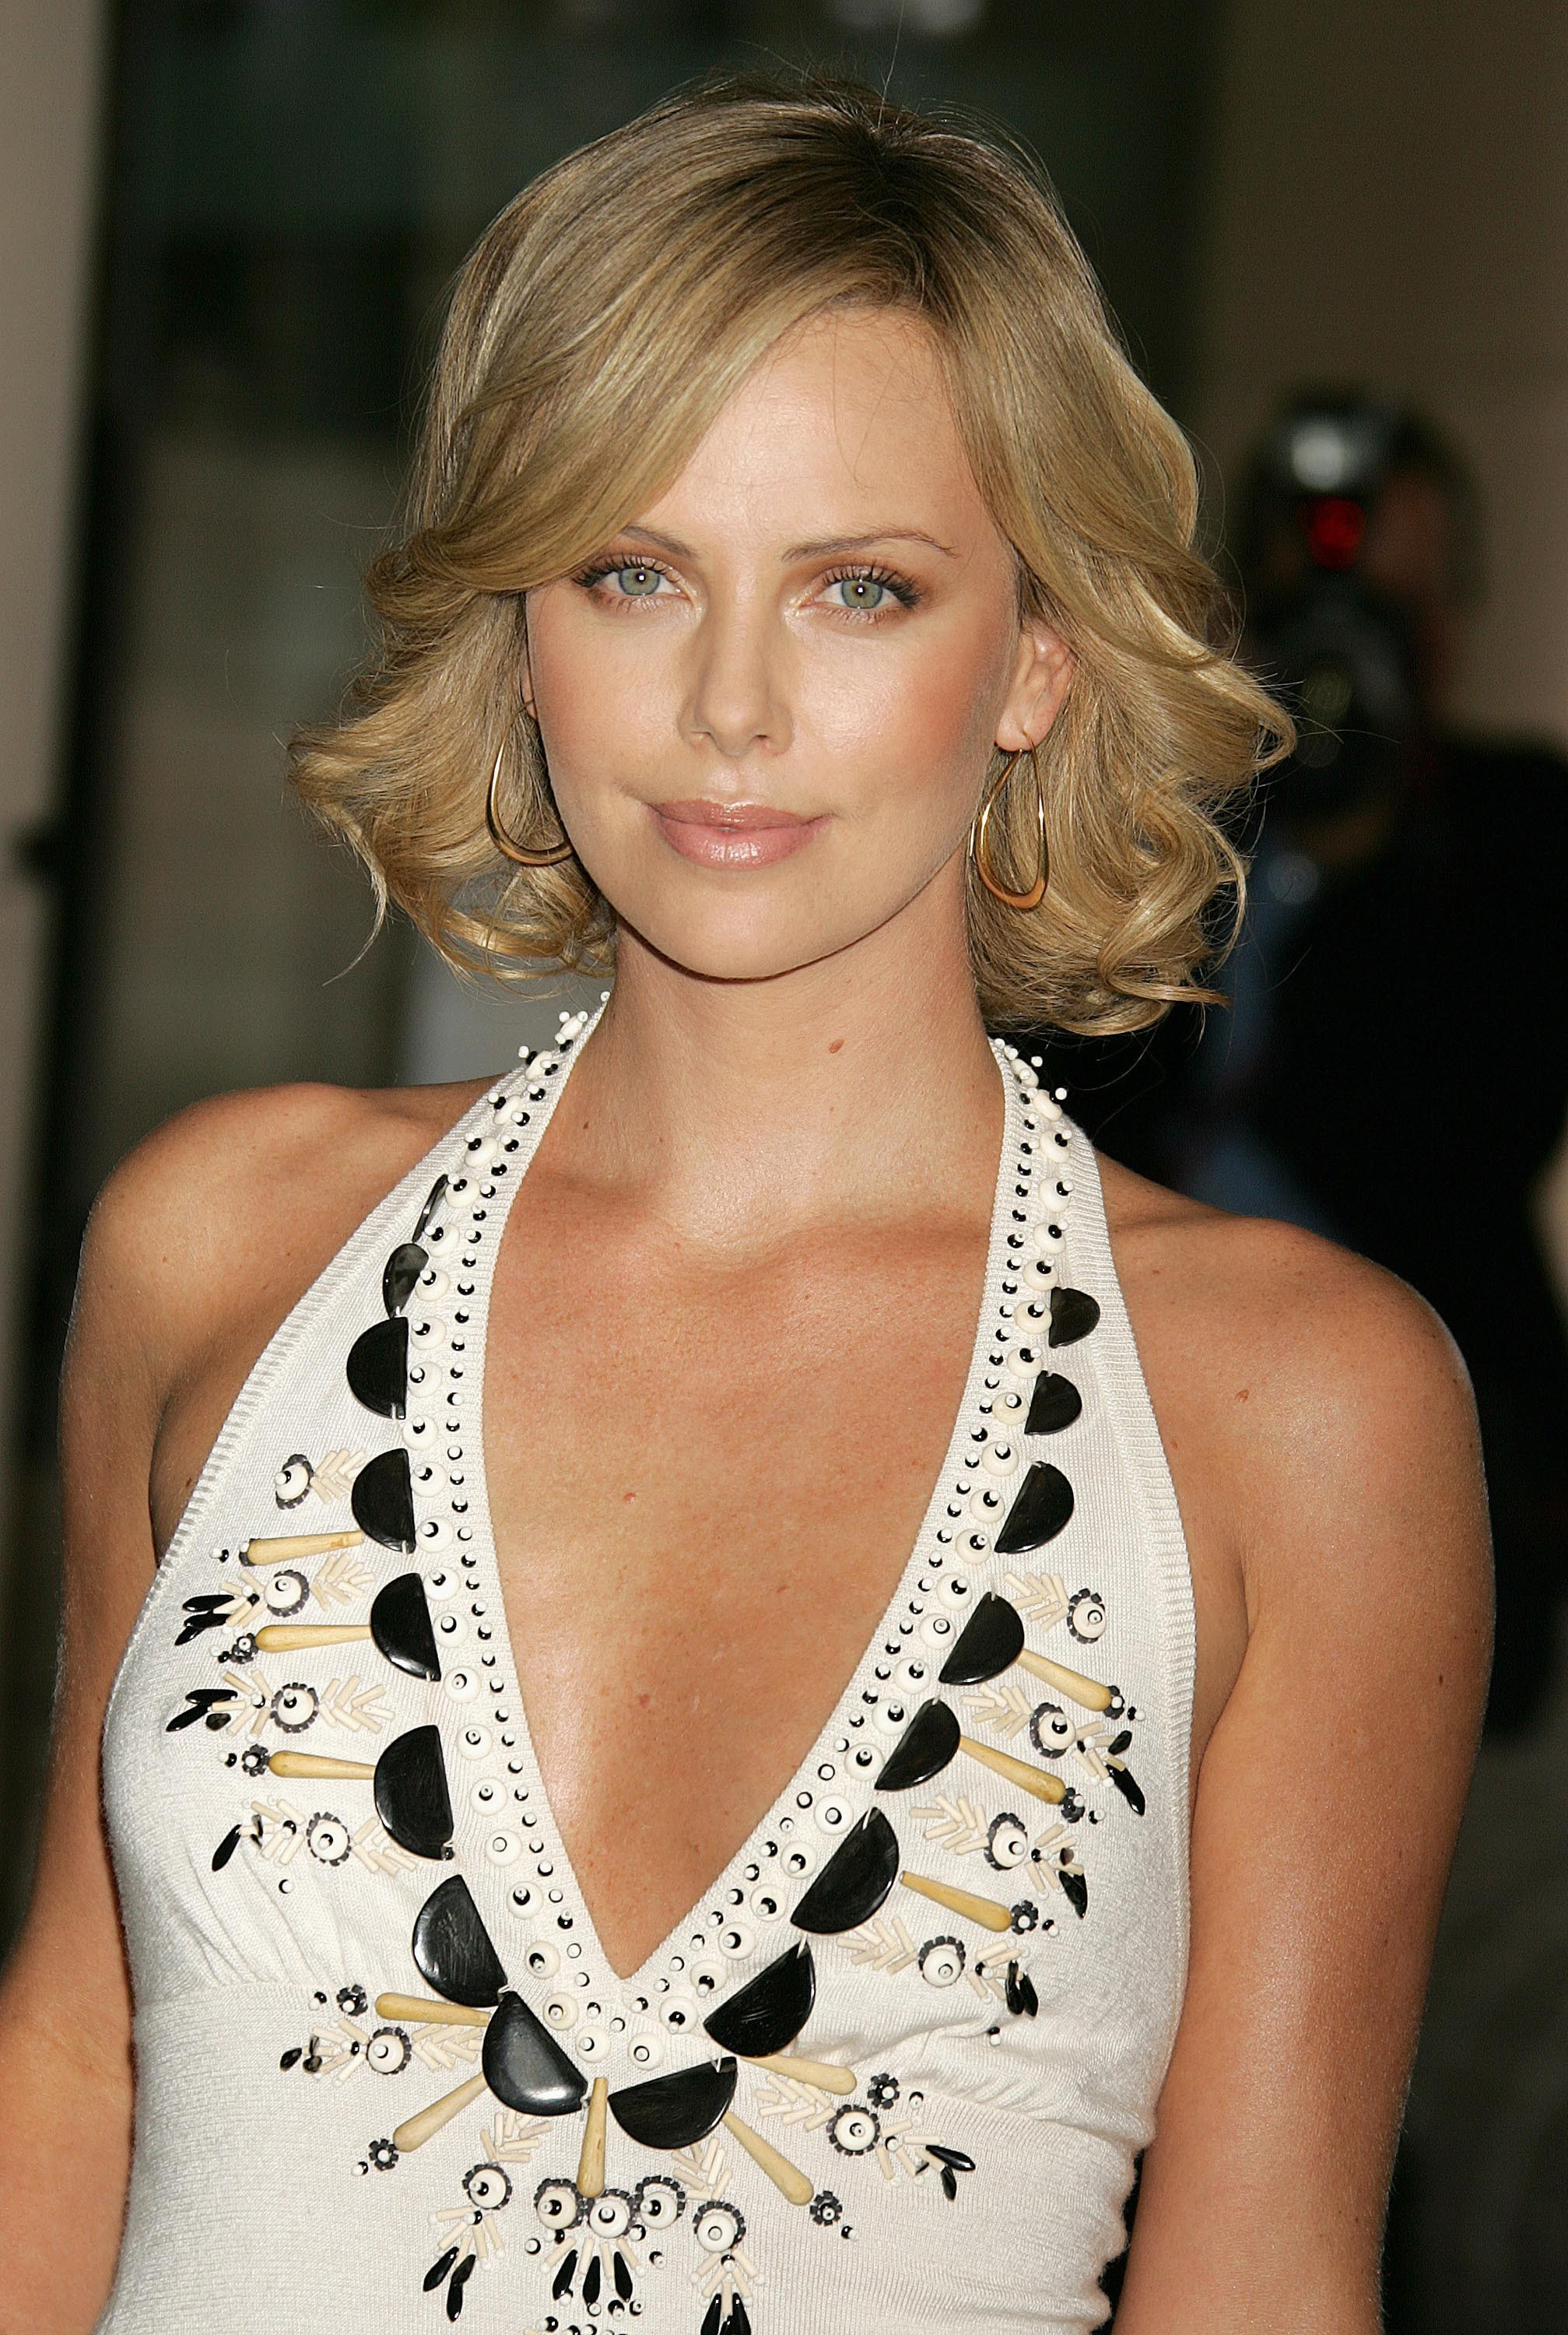 blondes woman Actress charlize HD Wallpaper